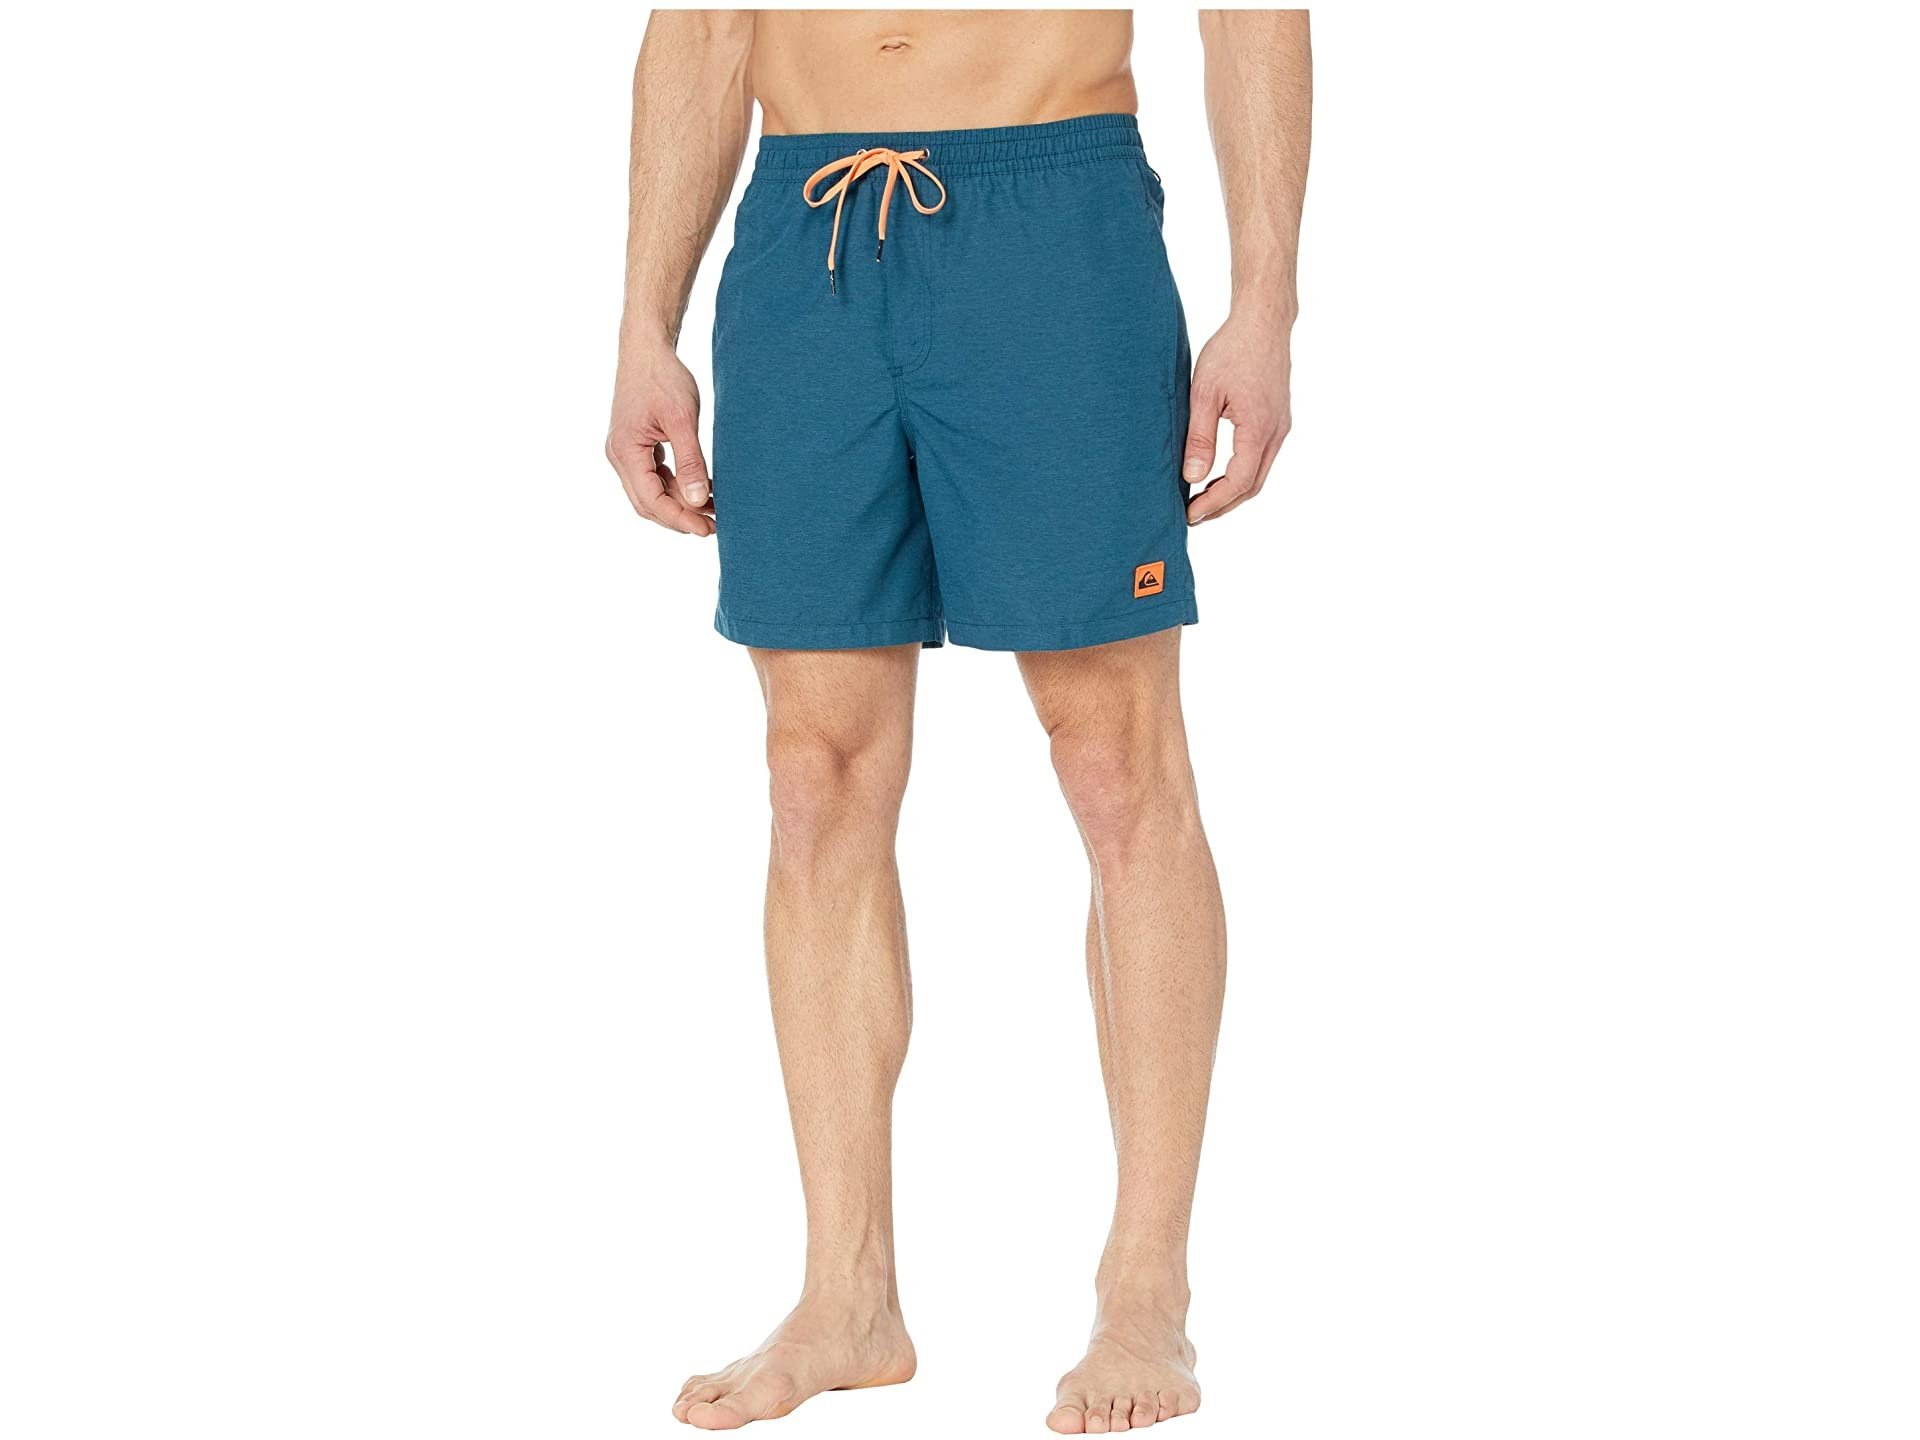 Quiksilver Everyday Volley 17 M's Short